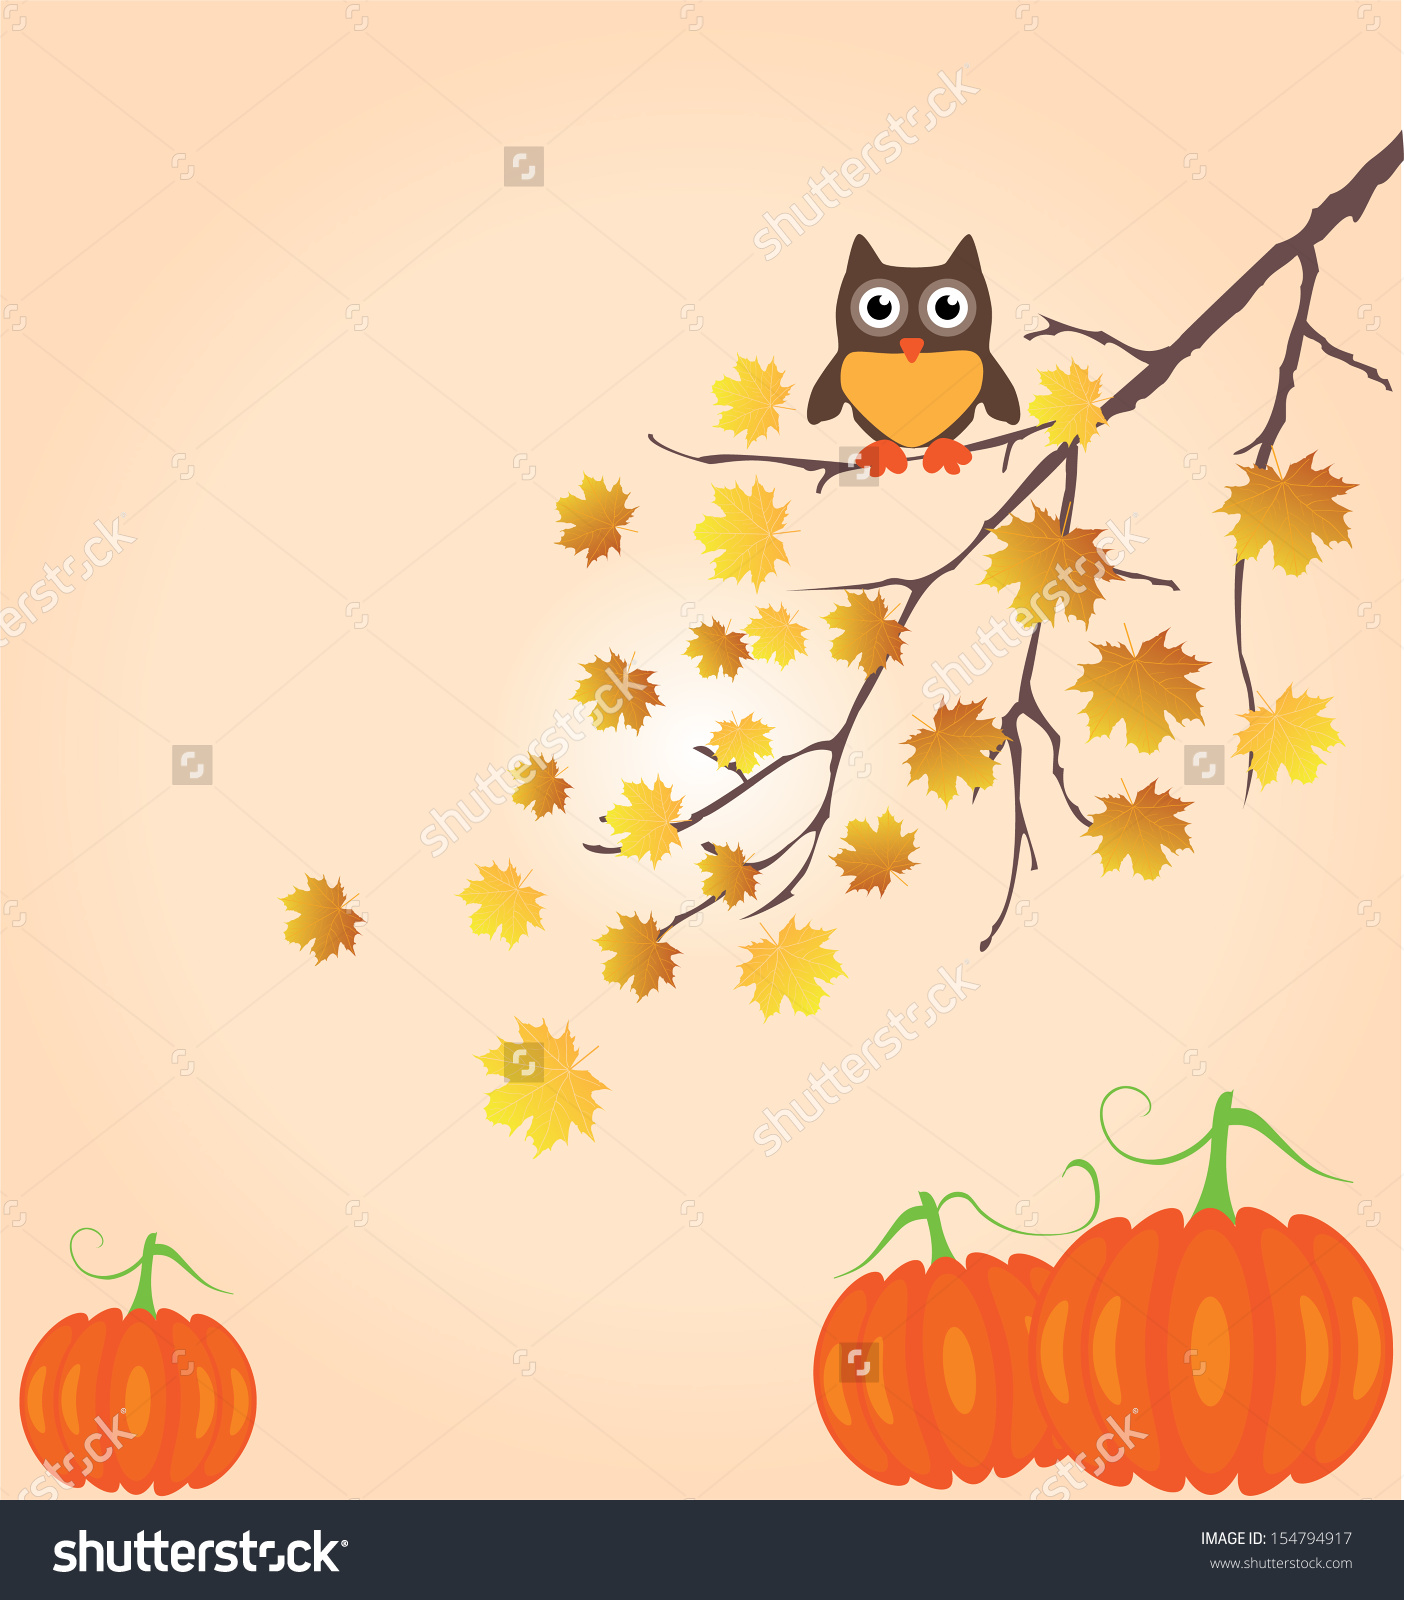 Vector Tree Branch In Fall With Owl And Pumpkins.